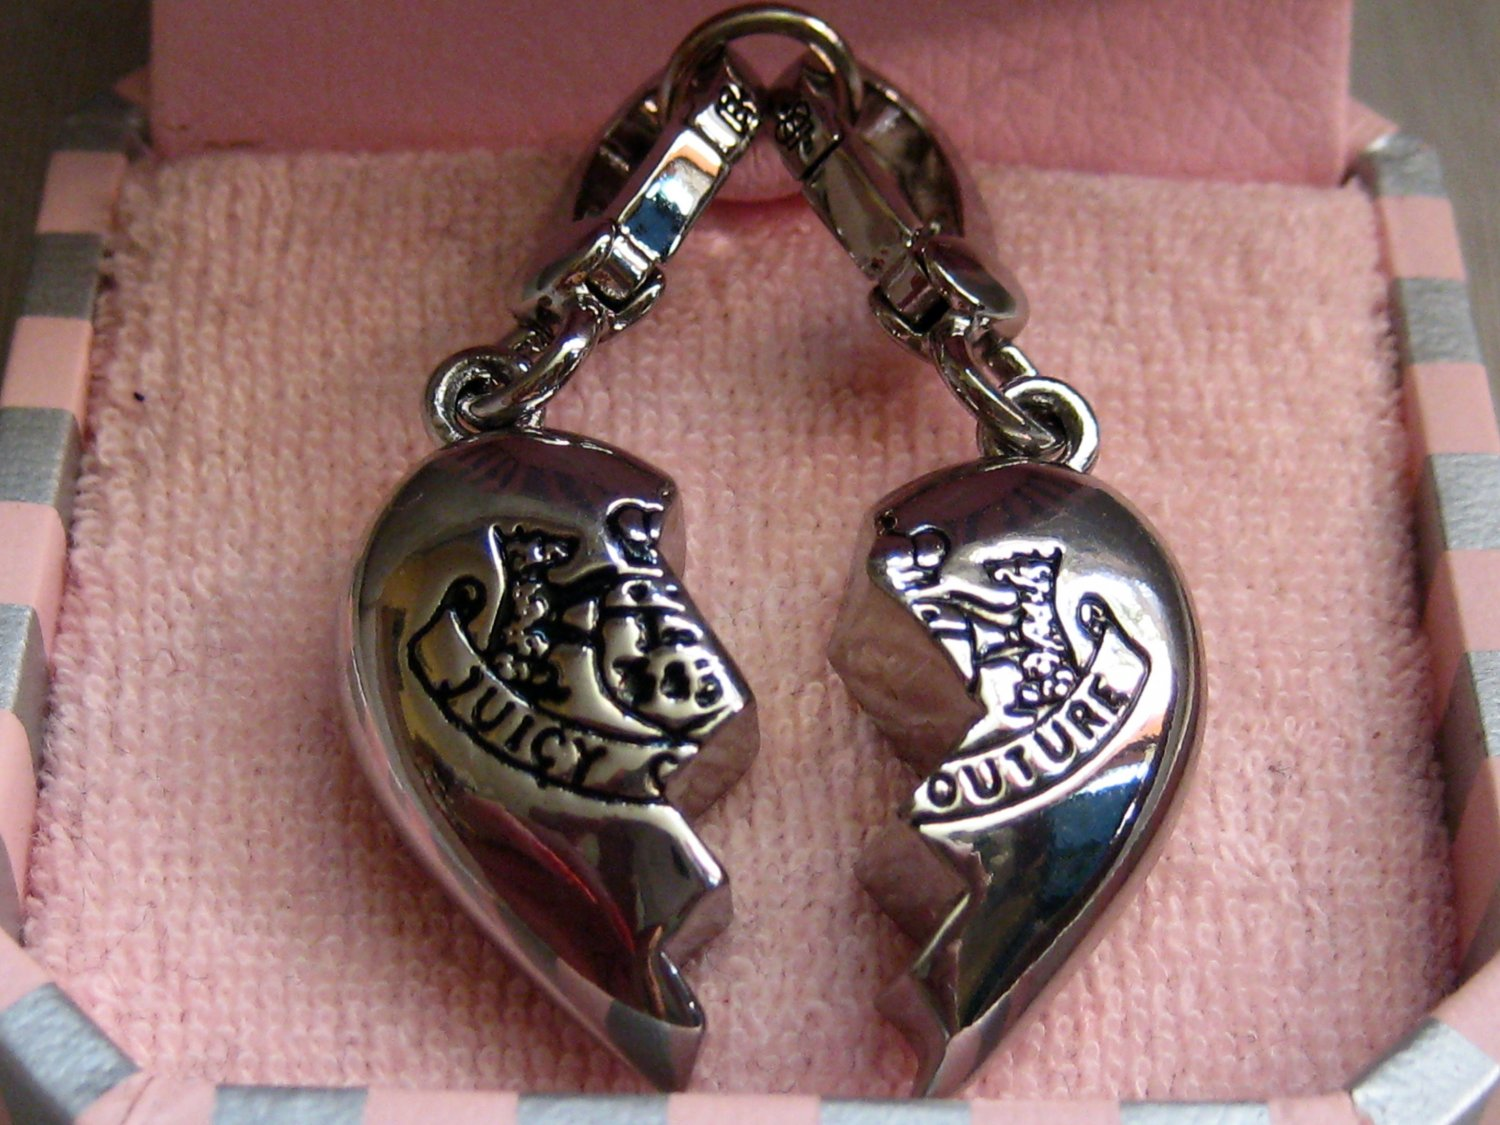 Juicy Couture C BEST FRIENDS Split Heart CHARM Set New in Box, AUTHENTHIC, RETIRED